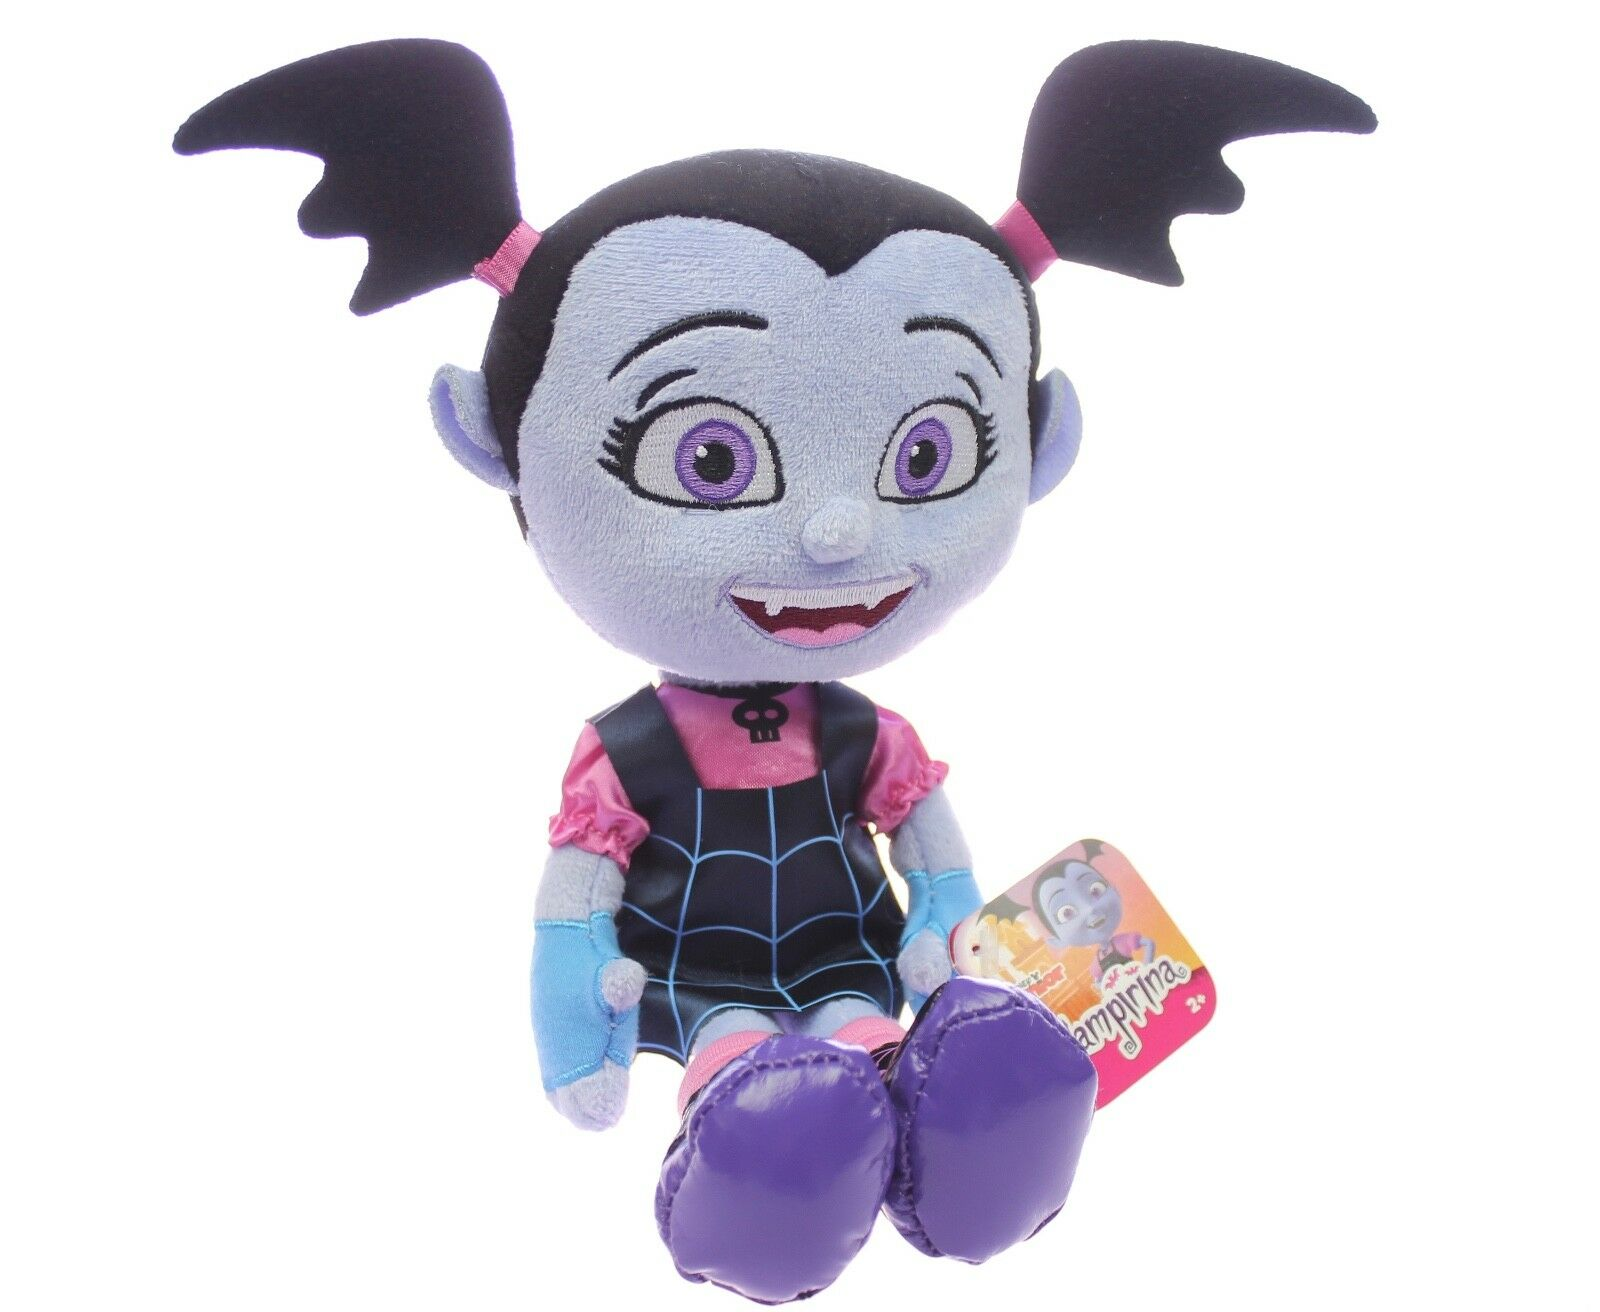 Disney Jr Vampirina 10 Inch Bean Plush 1